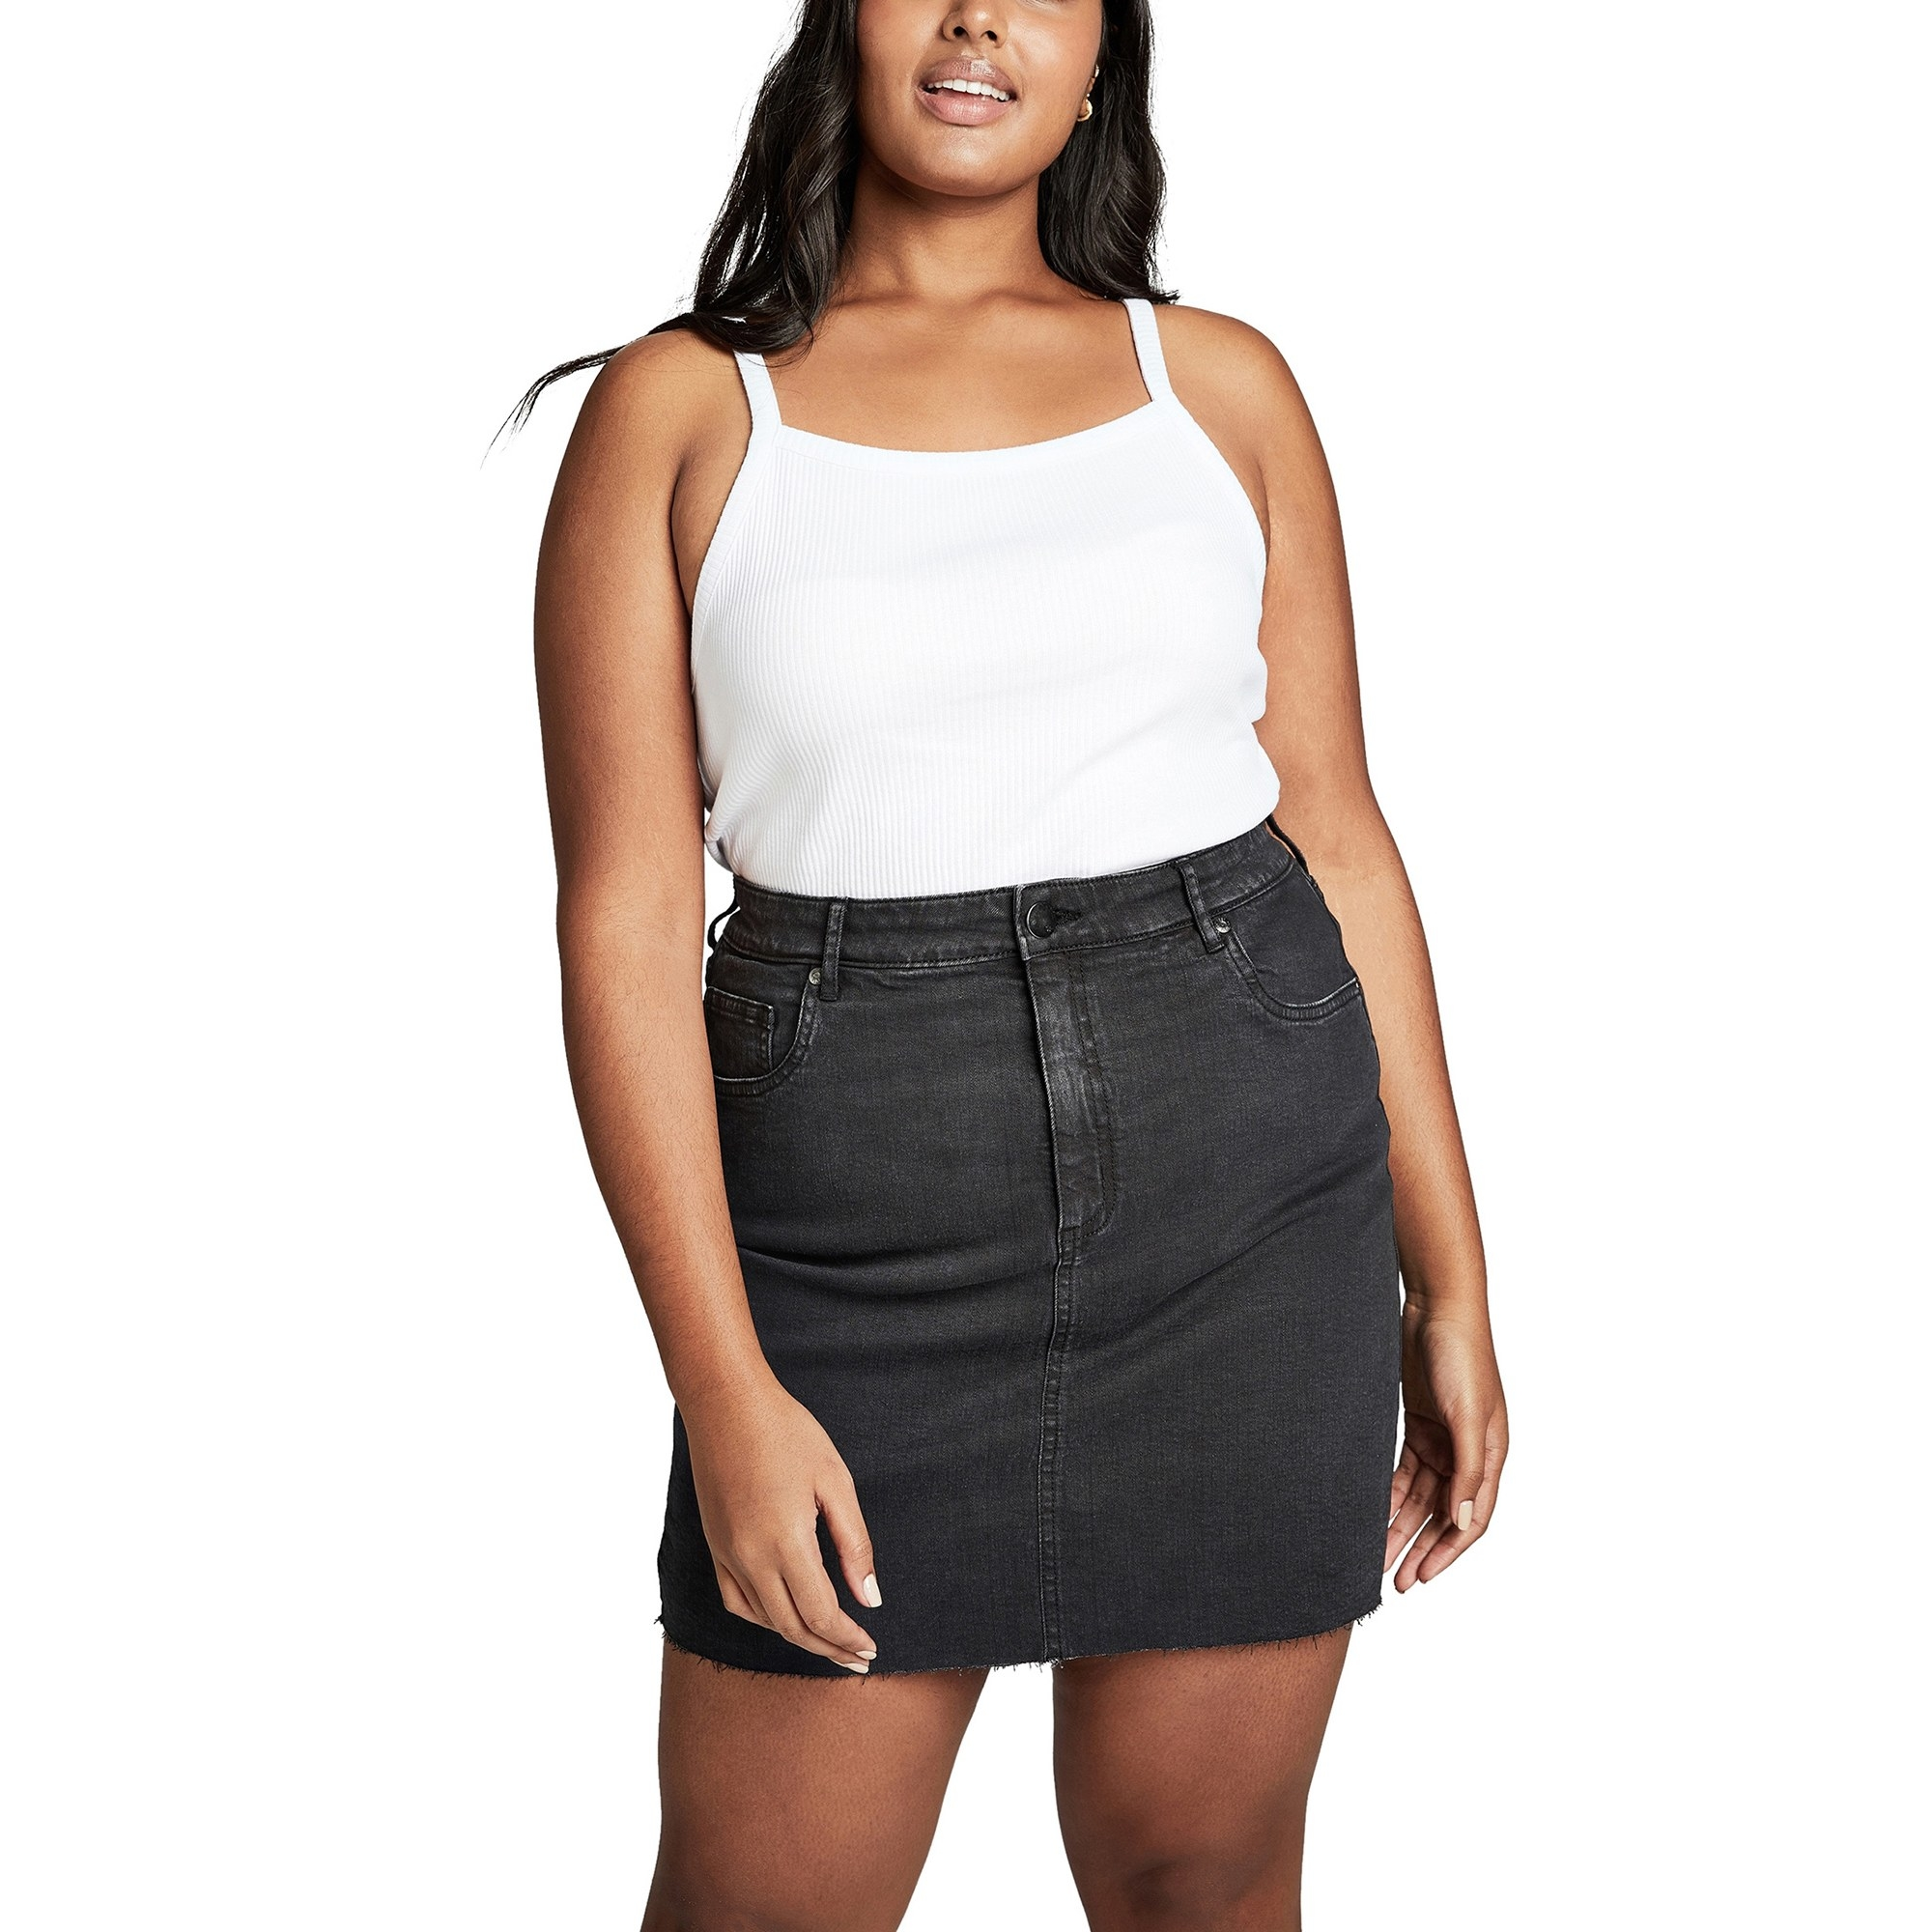 The black denim high-waisted skirt